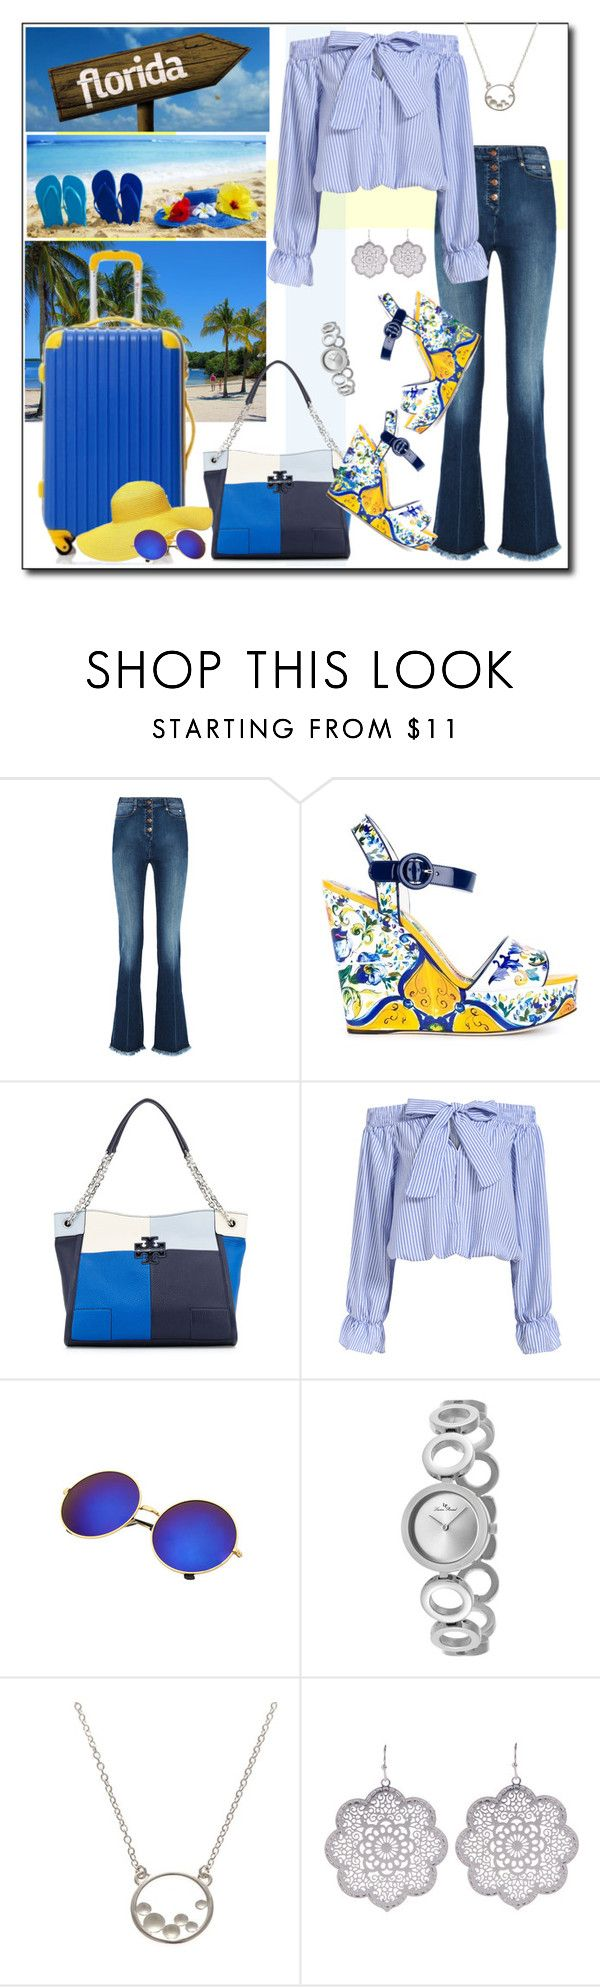 """""""Pack and Go: Winter Getaway to Florida"""" by court8434 ❤ liked on Polyvore featuring Sonia Rykiel, Dolce&Gabbana, Tory Burch, Lucien Piccard and Packandgo"""